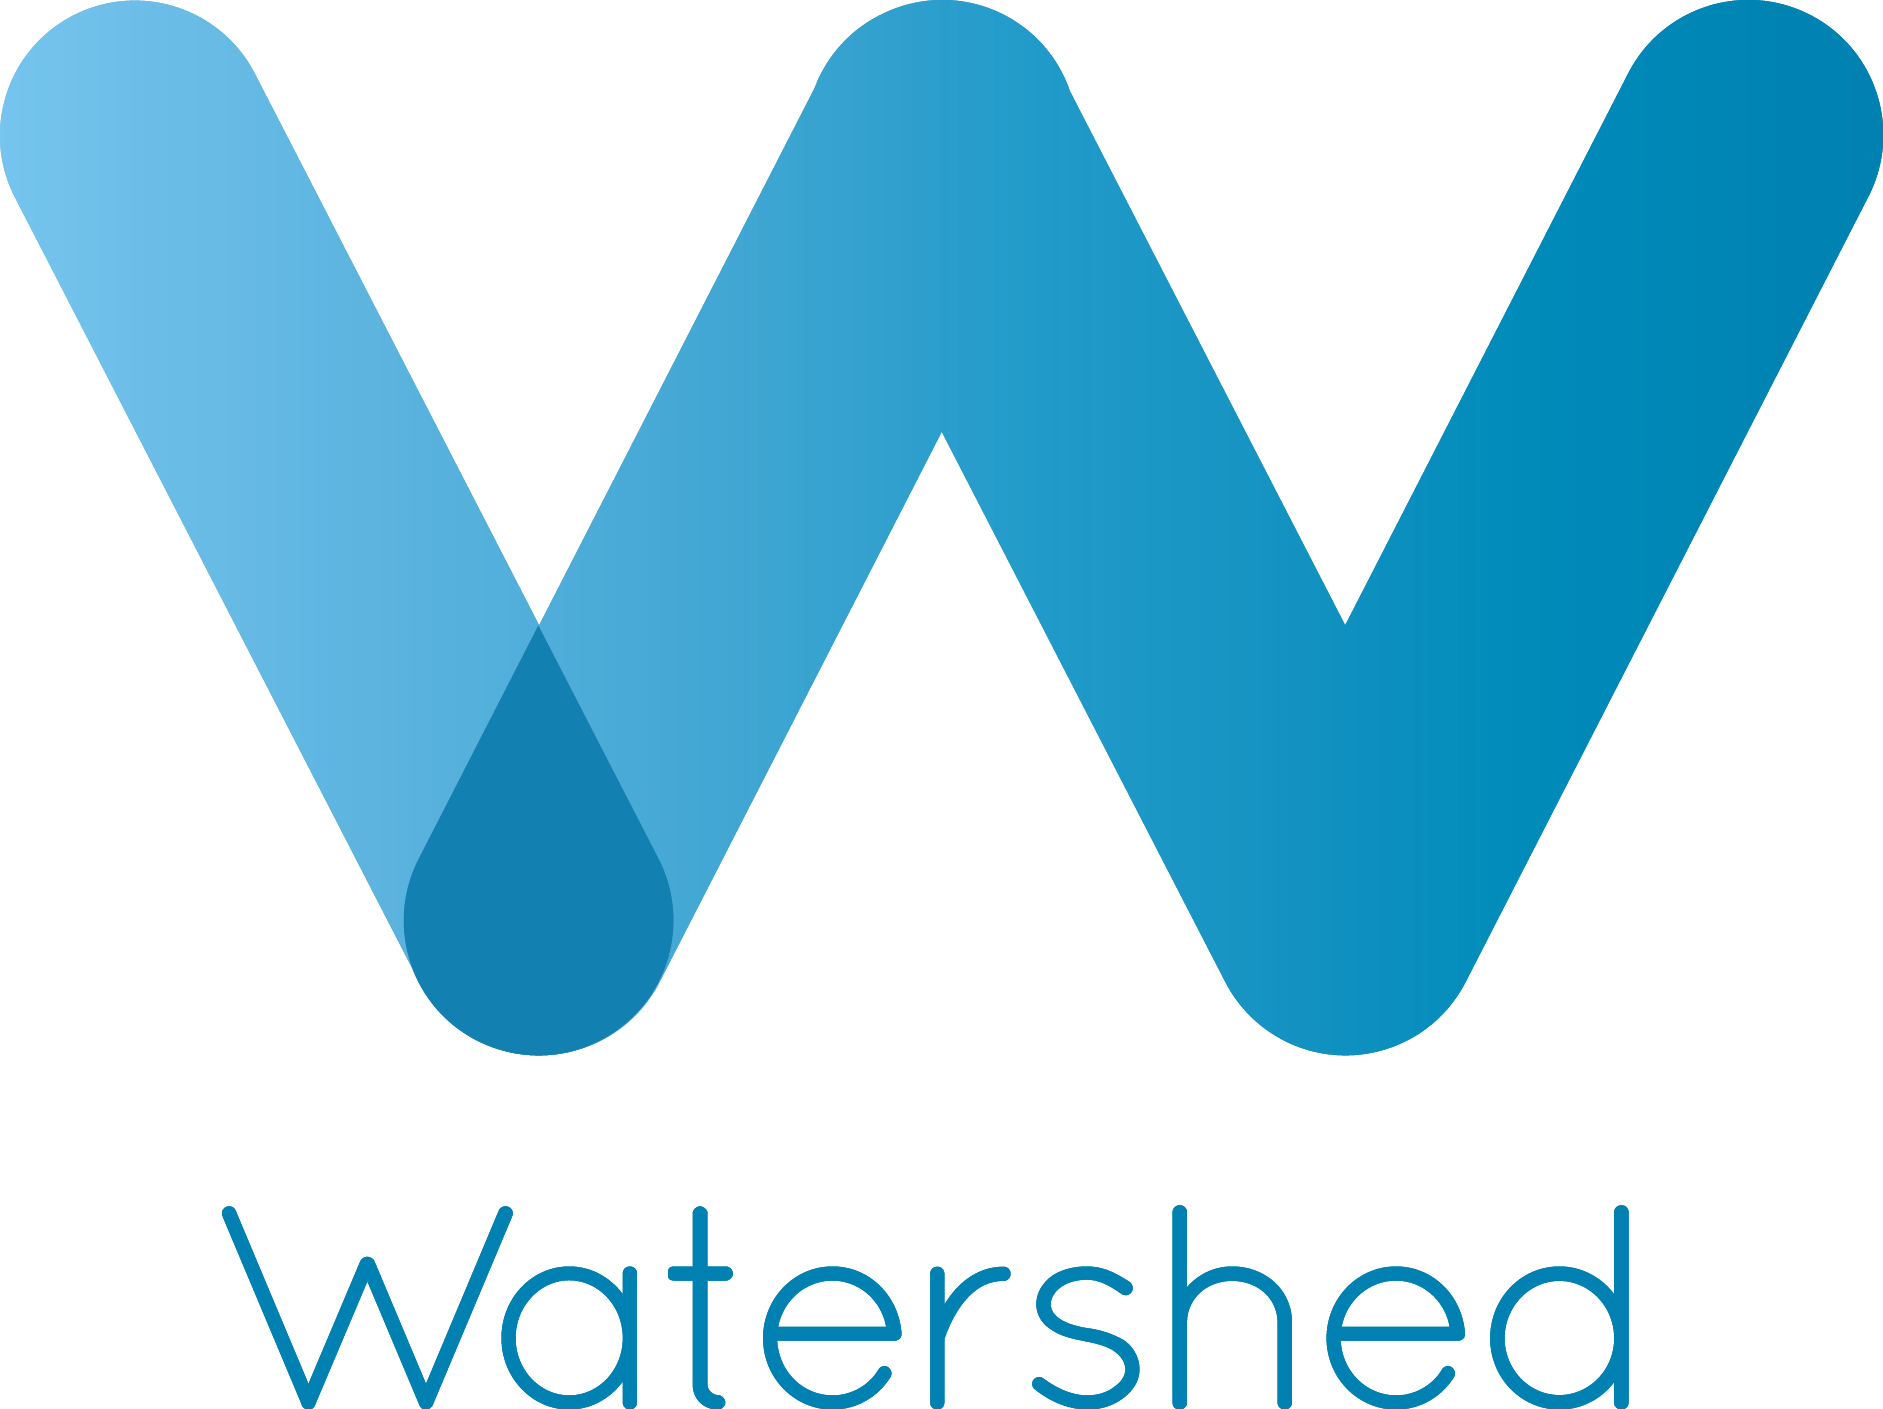 watershed_logo_gradient